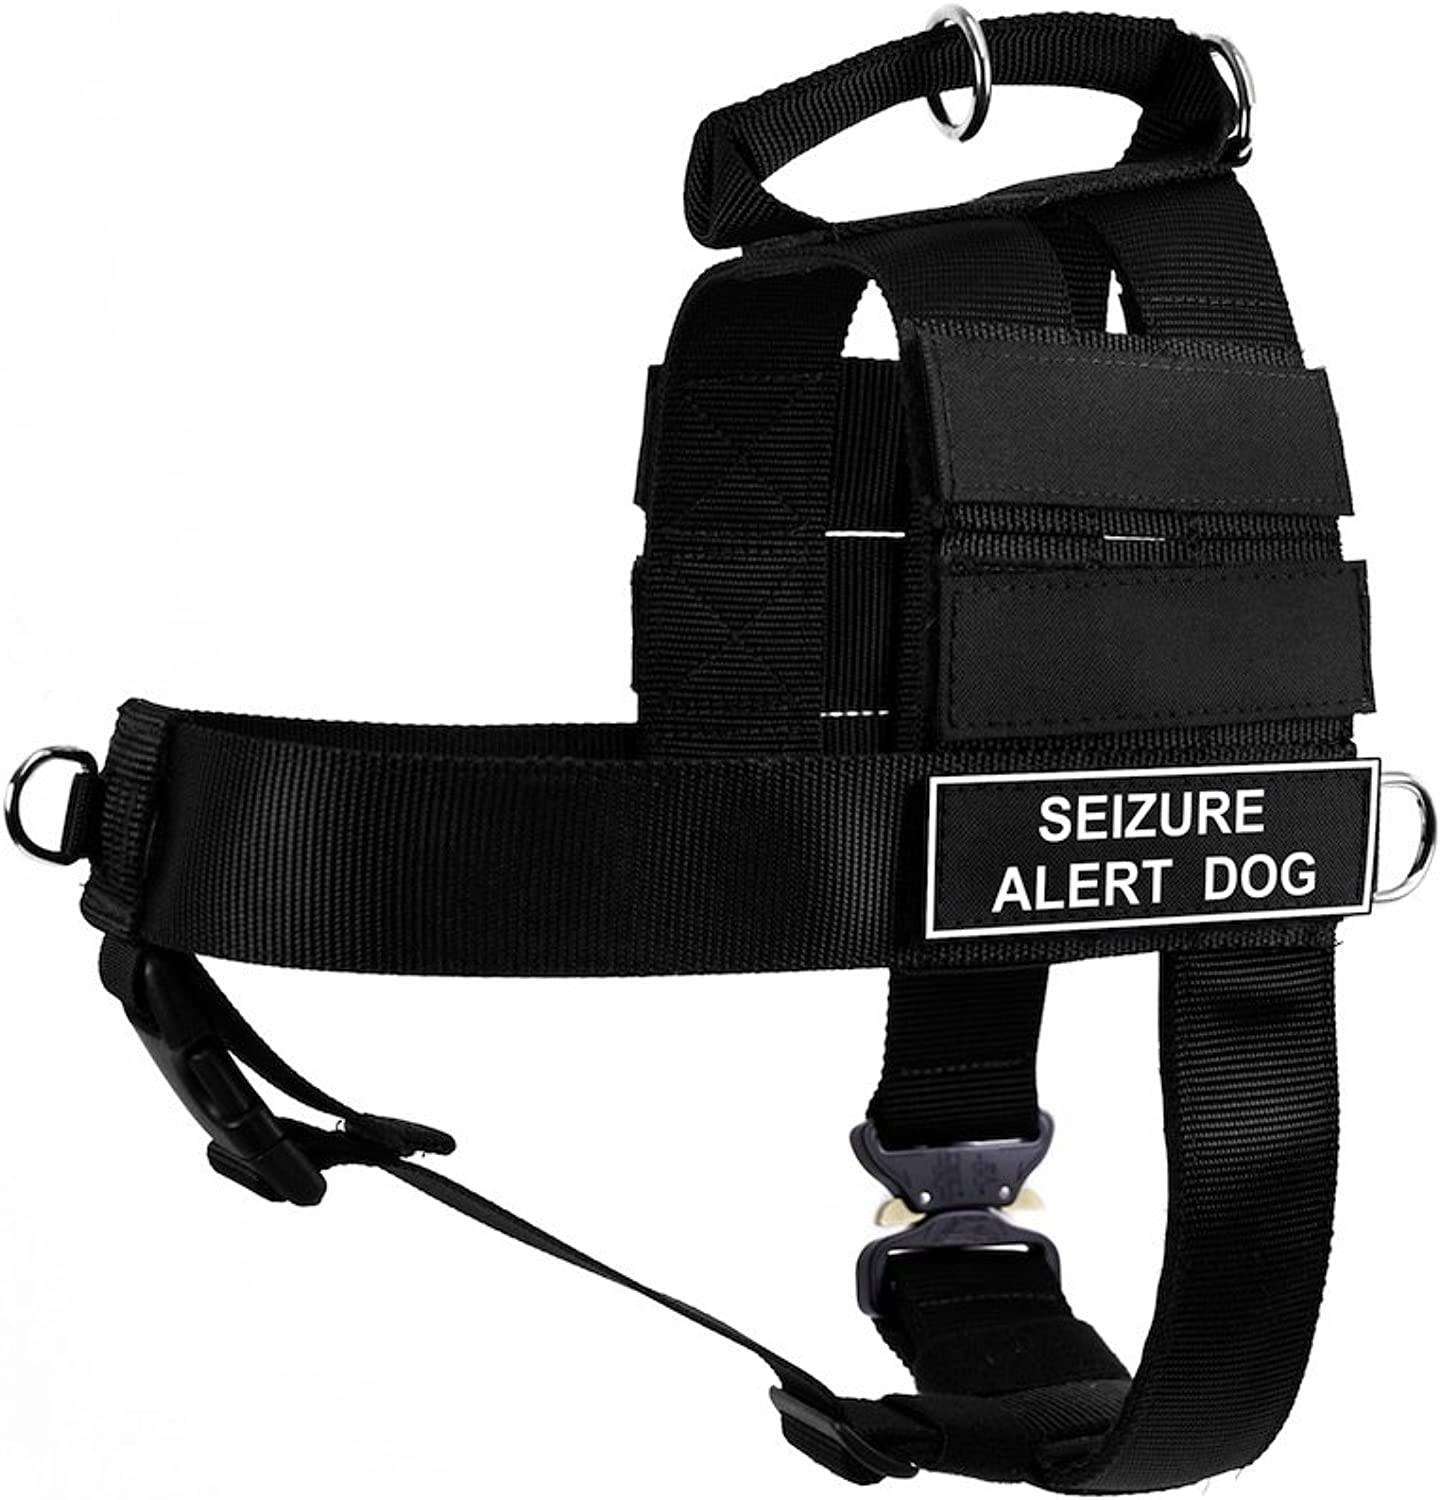 Dean & Tyler DT Cobra Seizure Alert Dog No Pull Harness, Small, Black